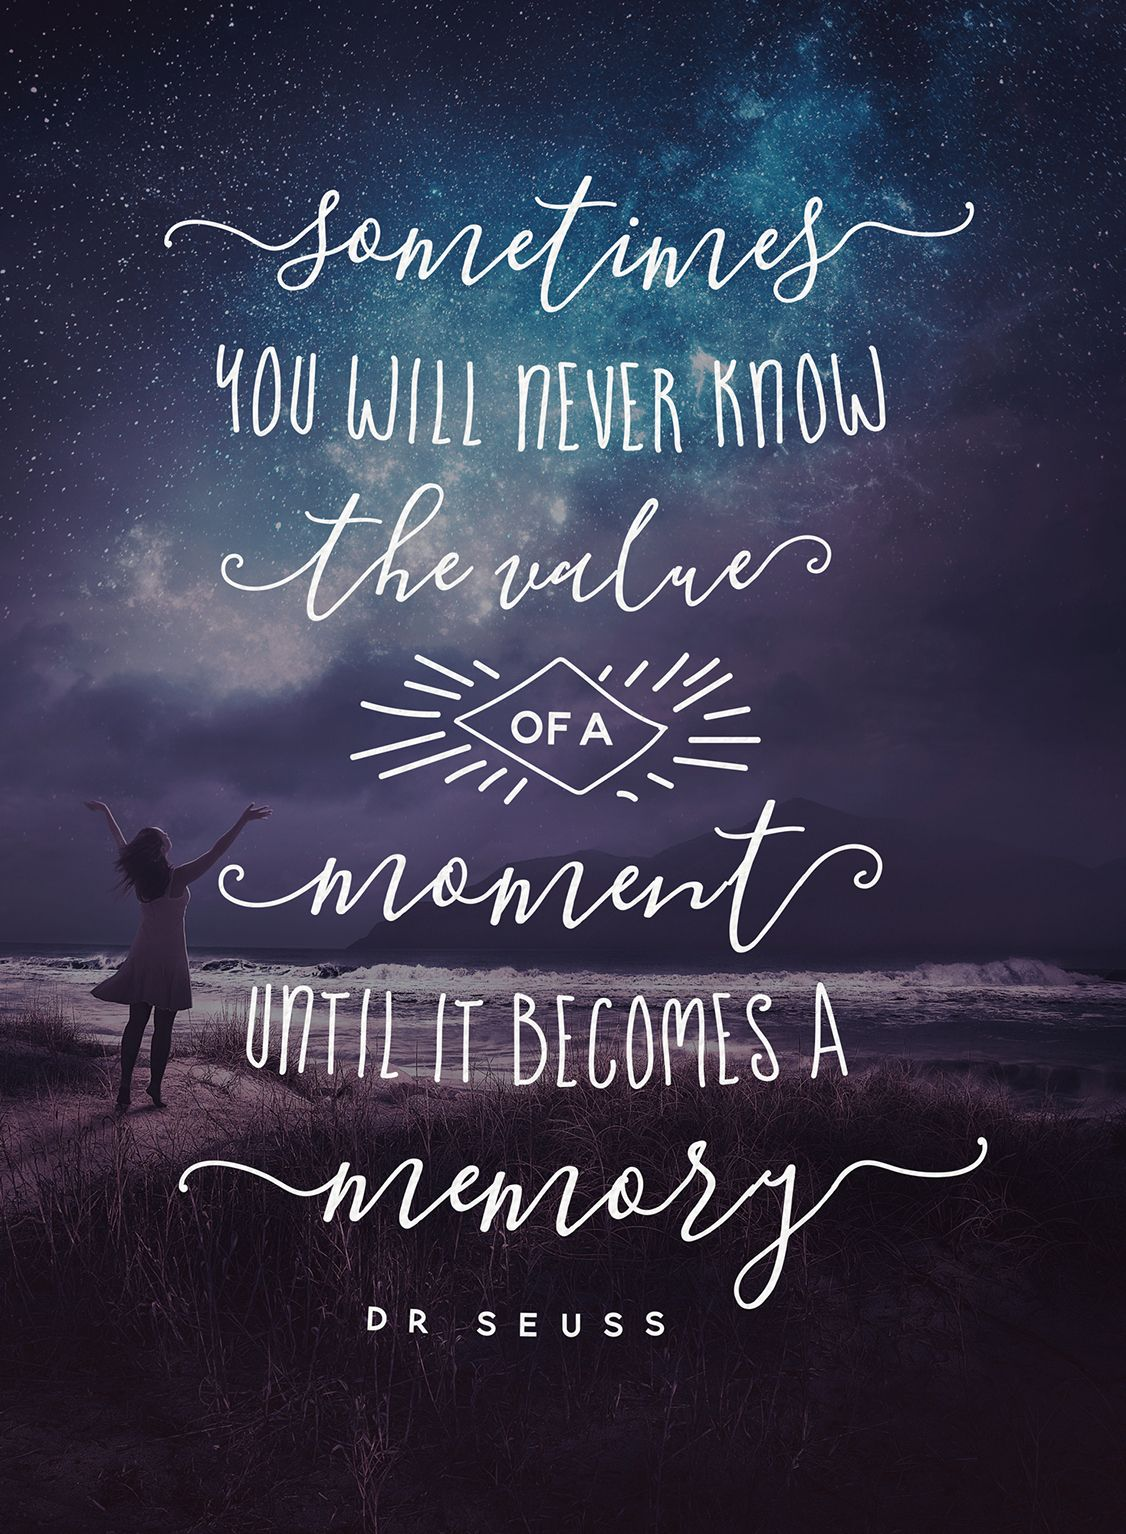 Gorgeous handwritten quote made with the blooming